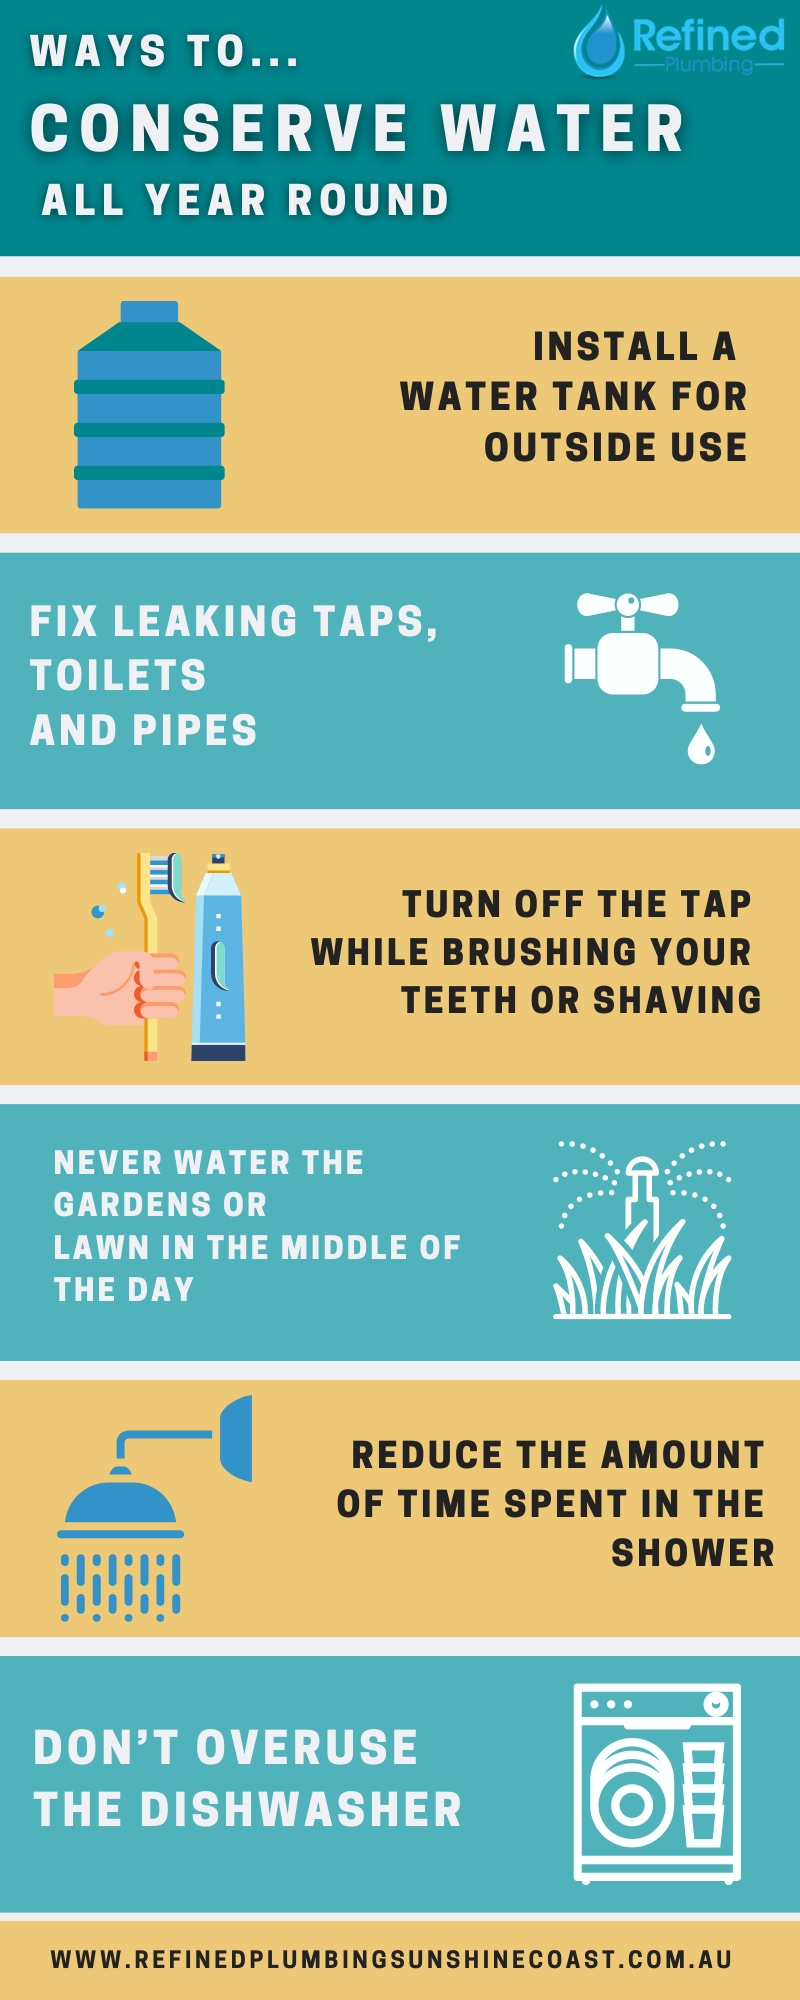 Ways To Conserve Water All Year Round Infog2